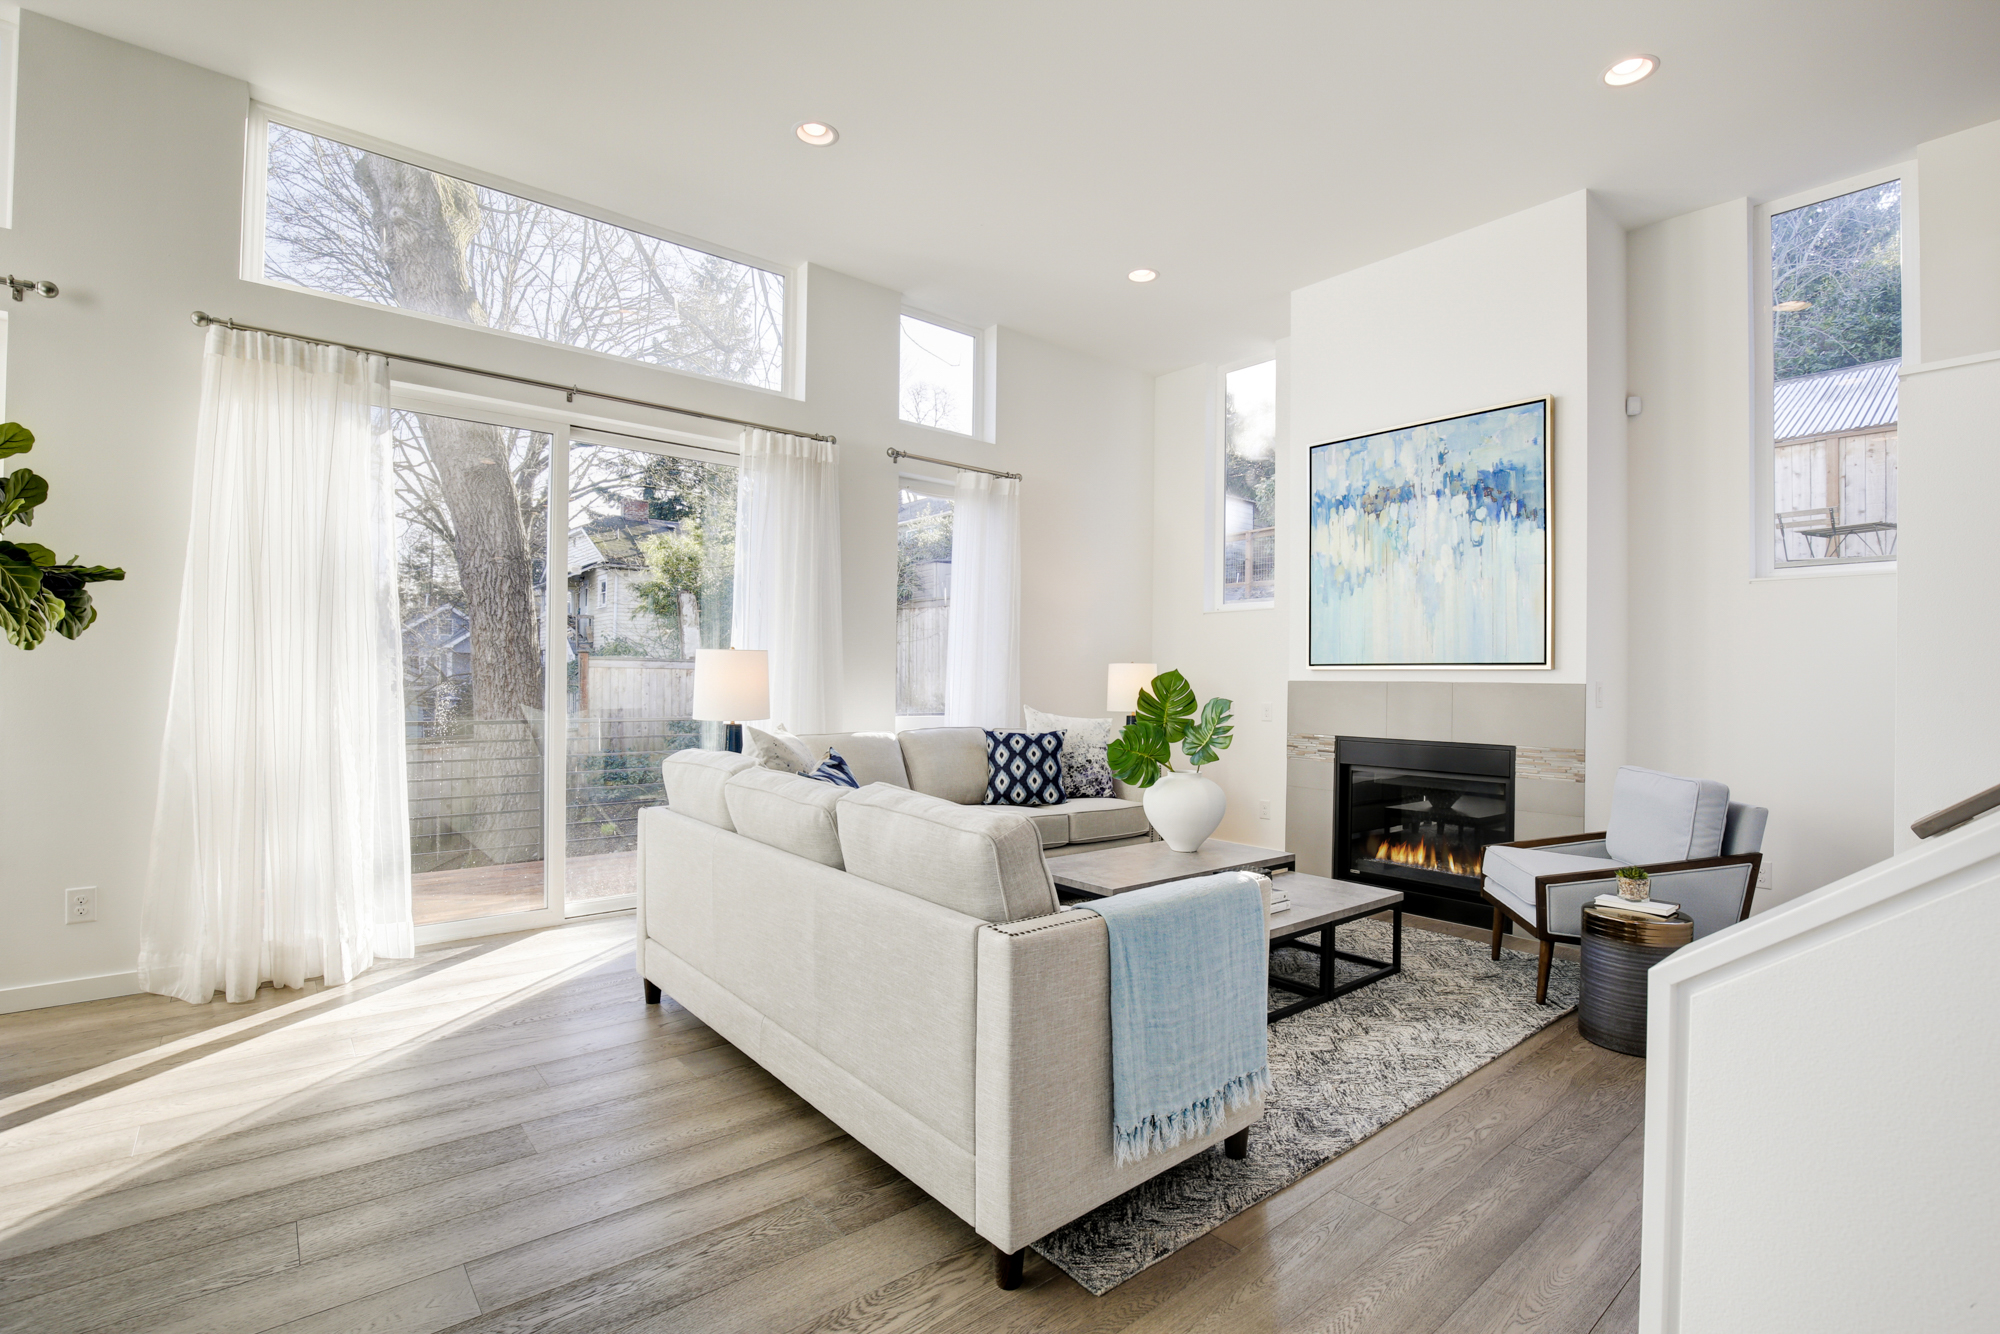 Seattle - Depth of Field in Real Estate Photography